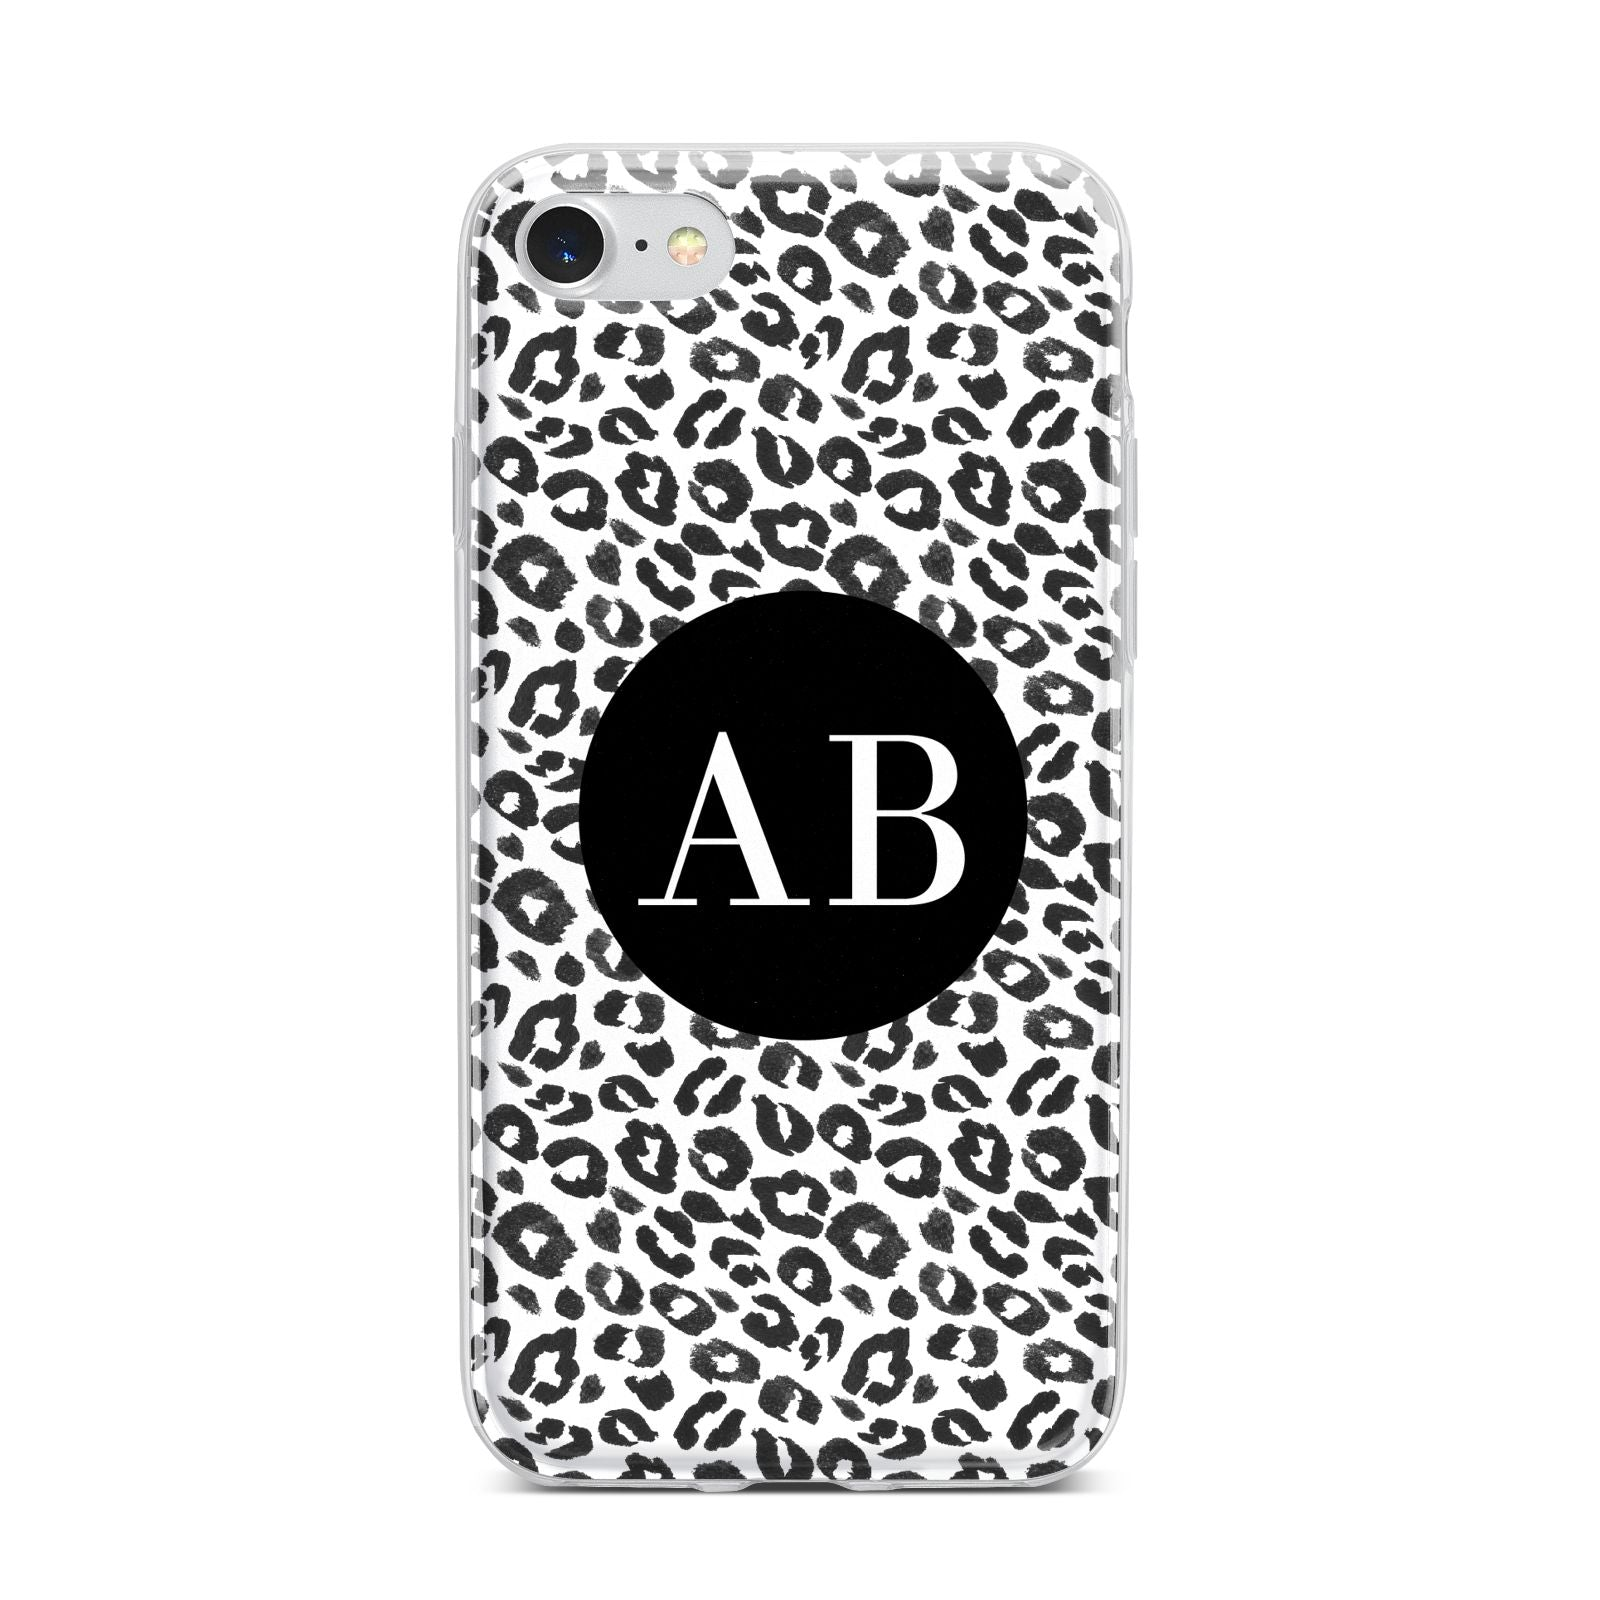 Leopard Print Black and White iPhone 7 Bumper Case on Silver iPhone